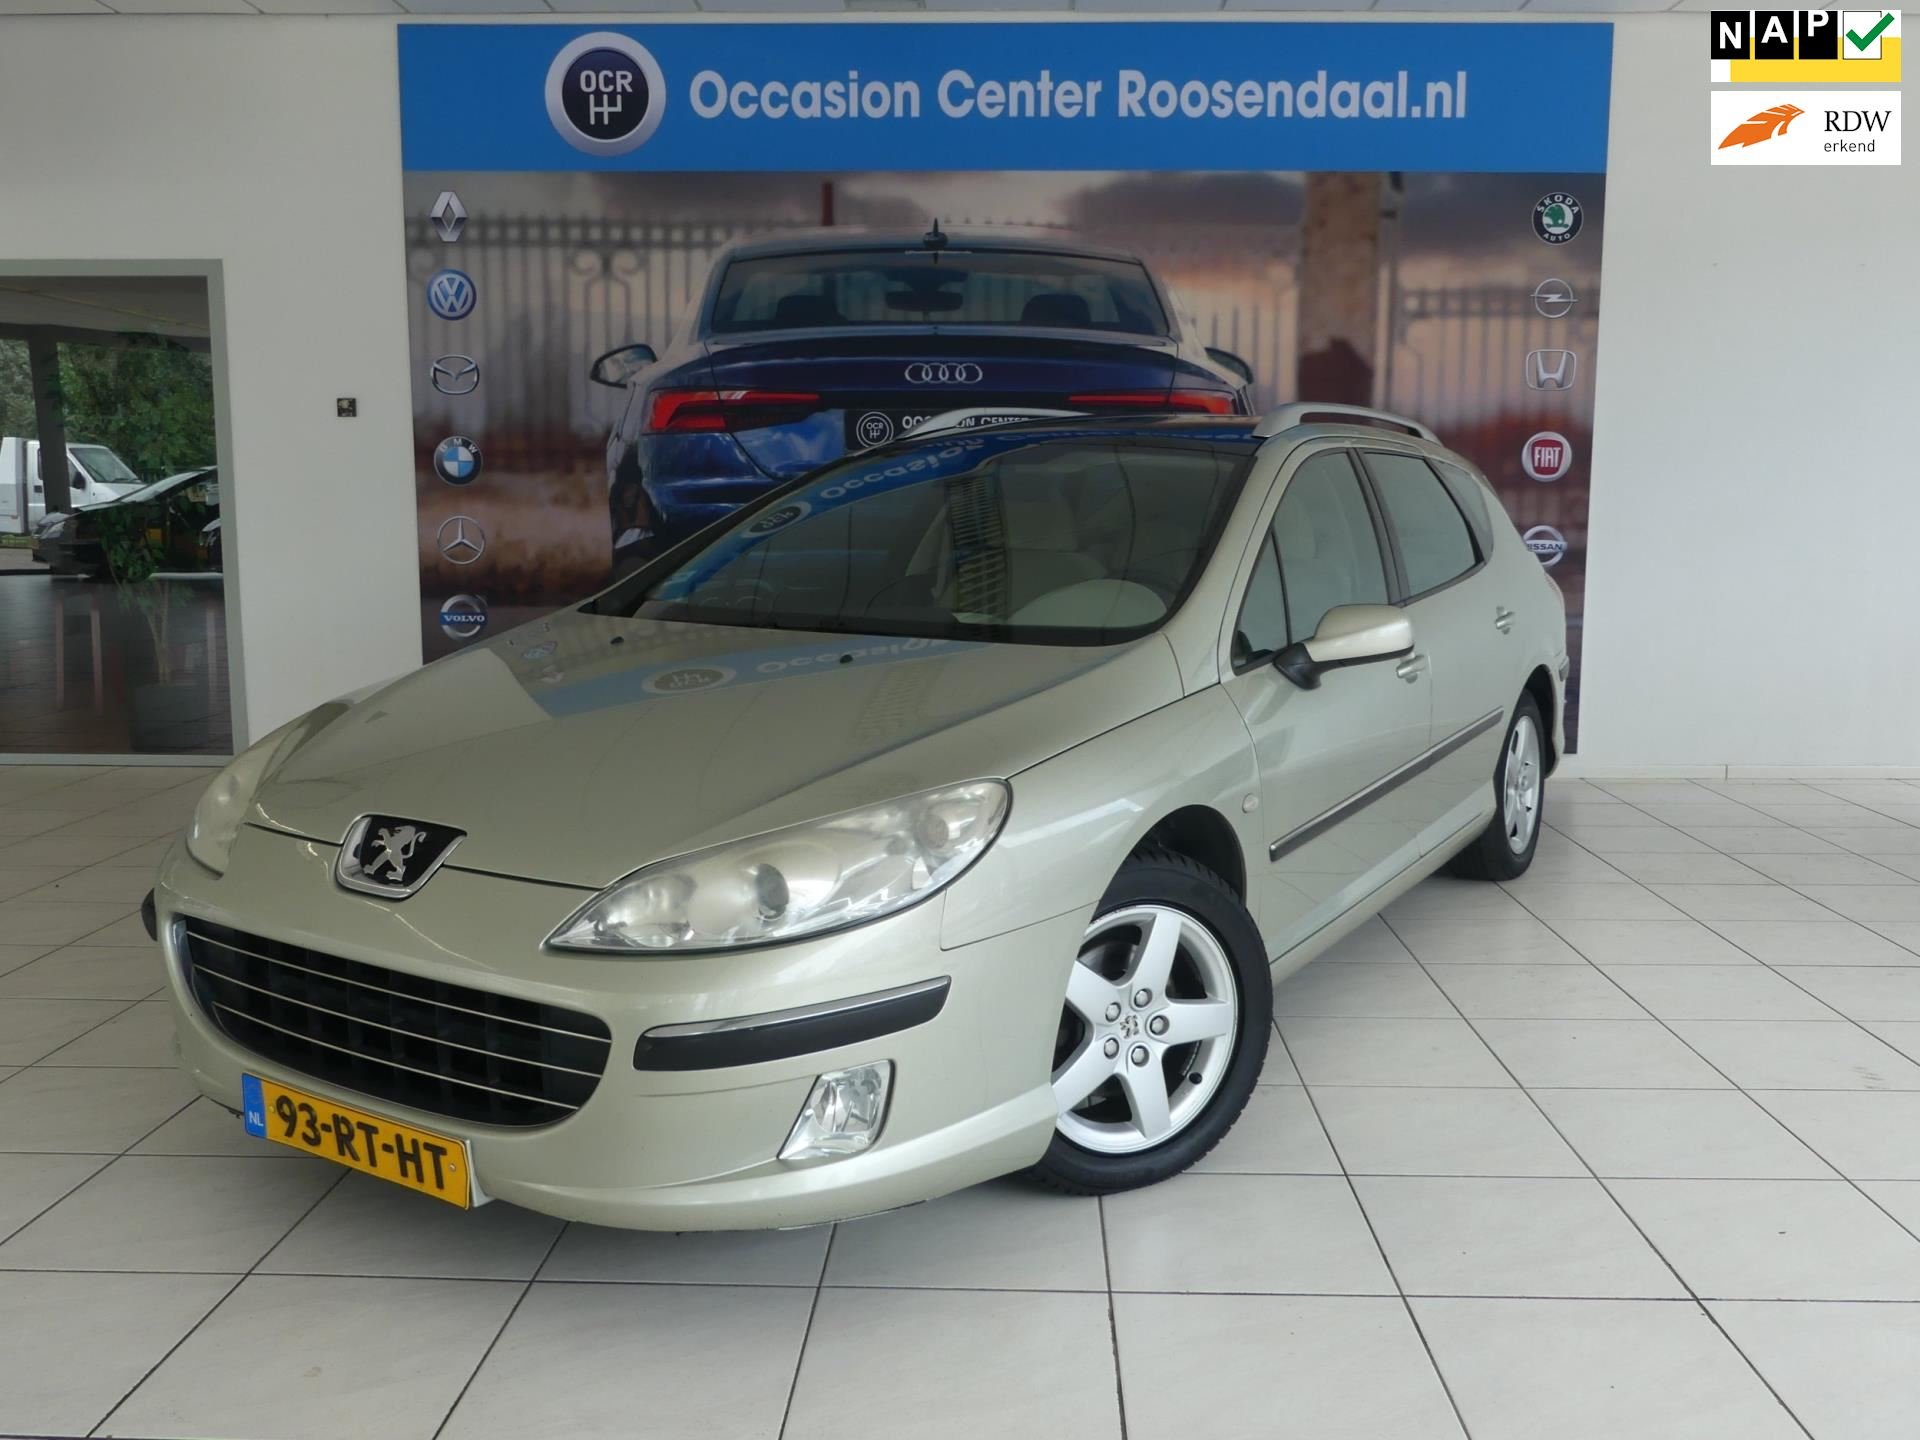 Peugeot 407 SW occasion - Occasion Center Roosendaal